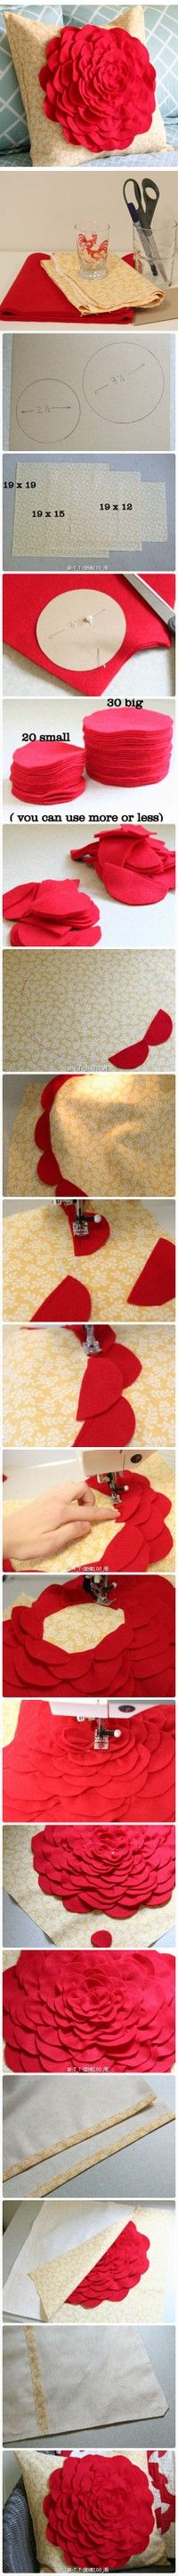 Floral pillow.  Make a round back and when the pillow  is filled, the blossom will open.  Looks beautiful.